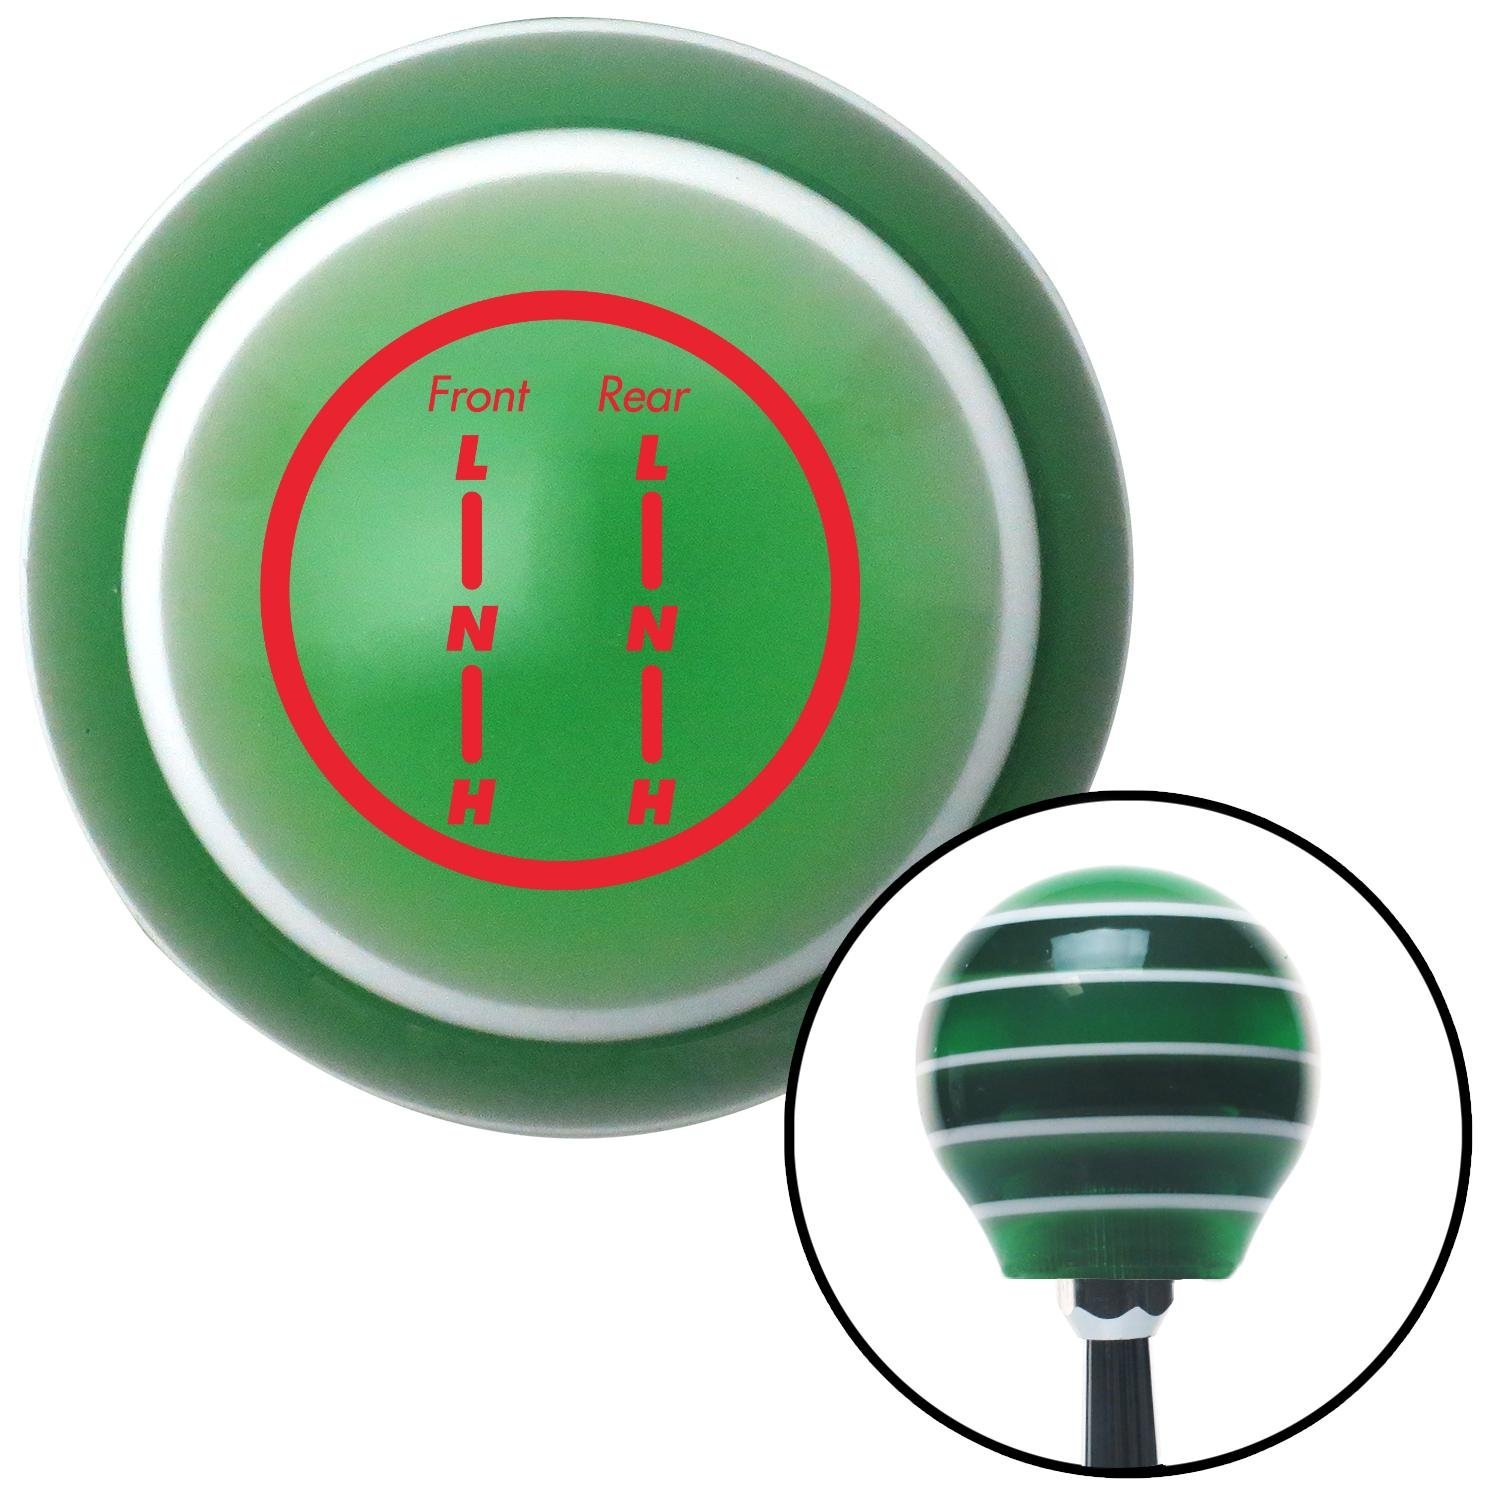 Red Transfer Case #7 American Shifter 127666 Green Stripe Shift Knob with M16 x 1.5 Insert